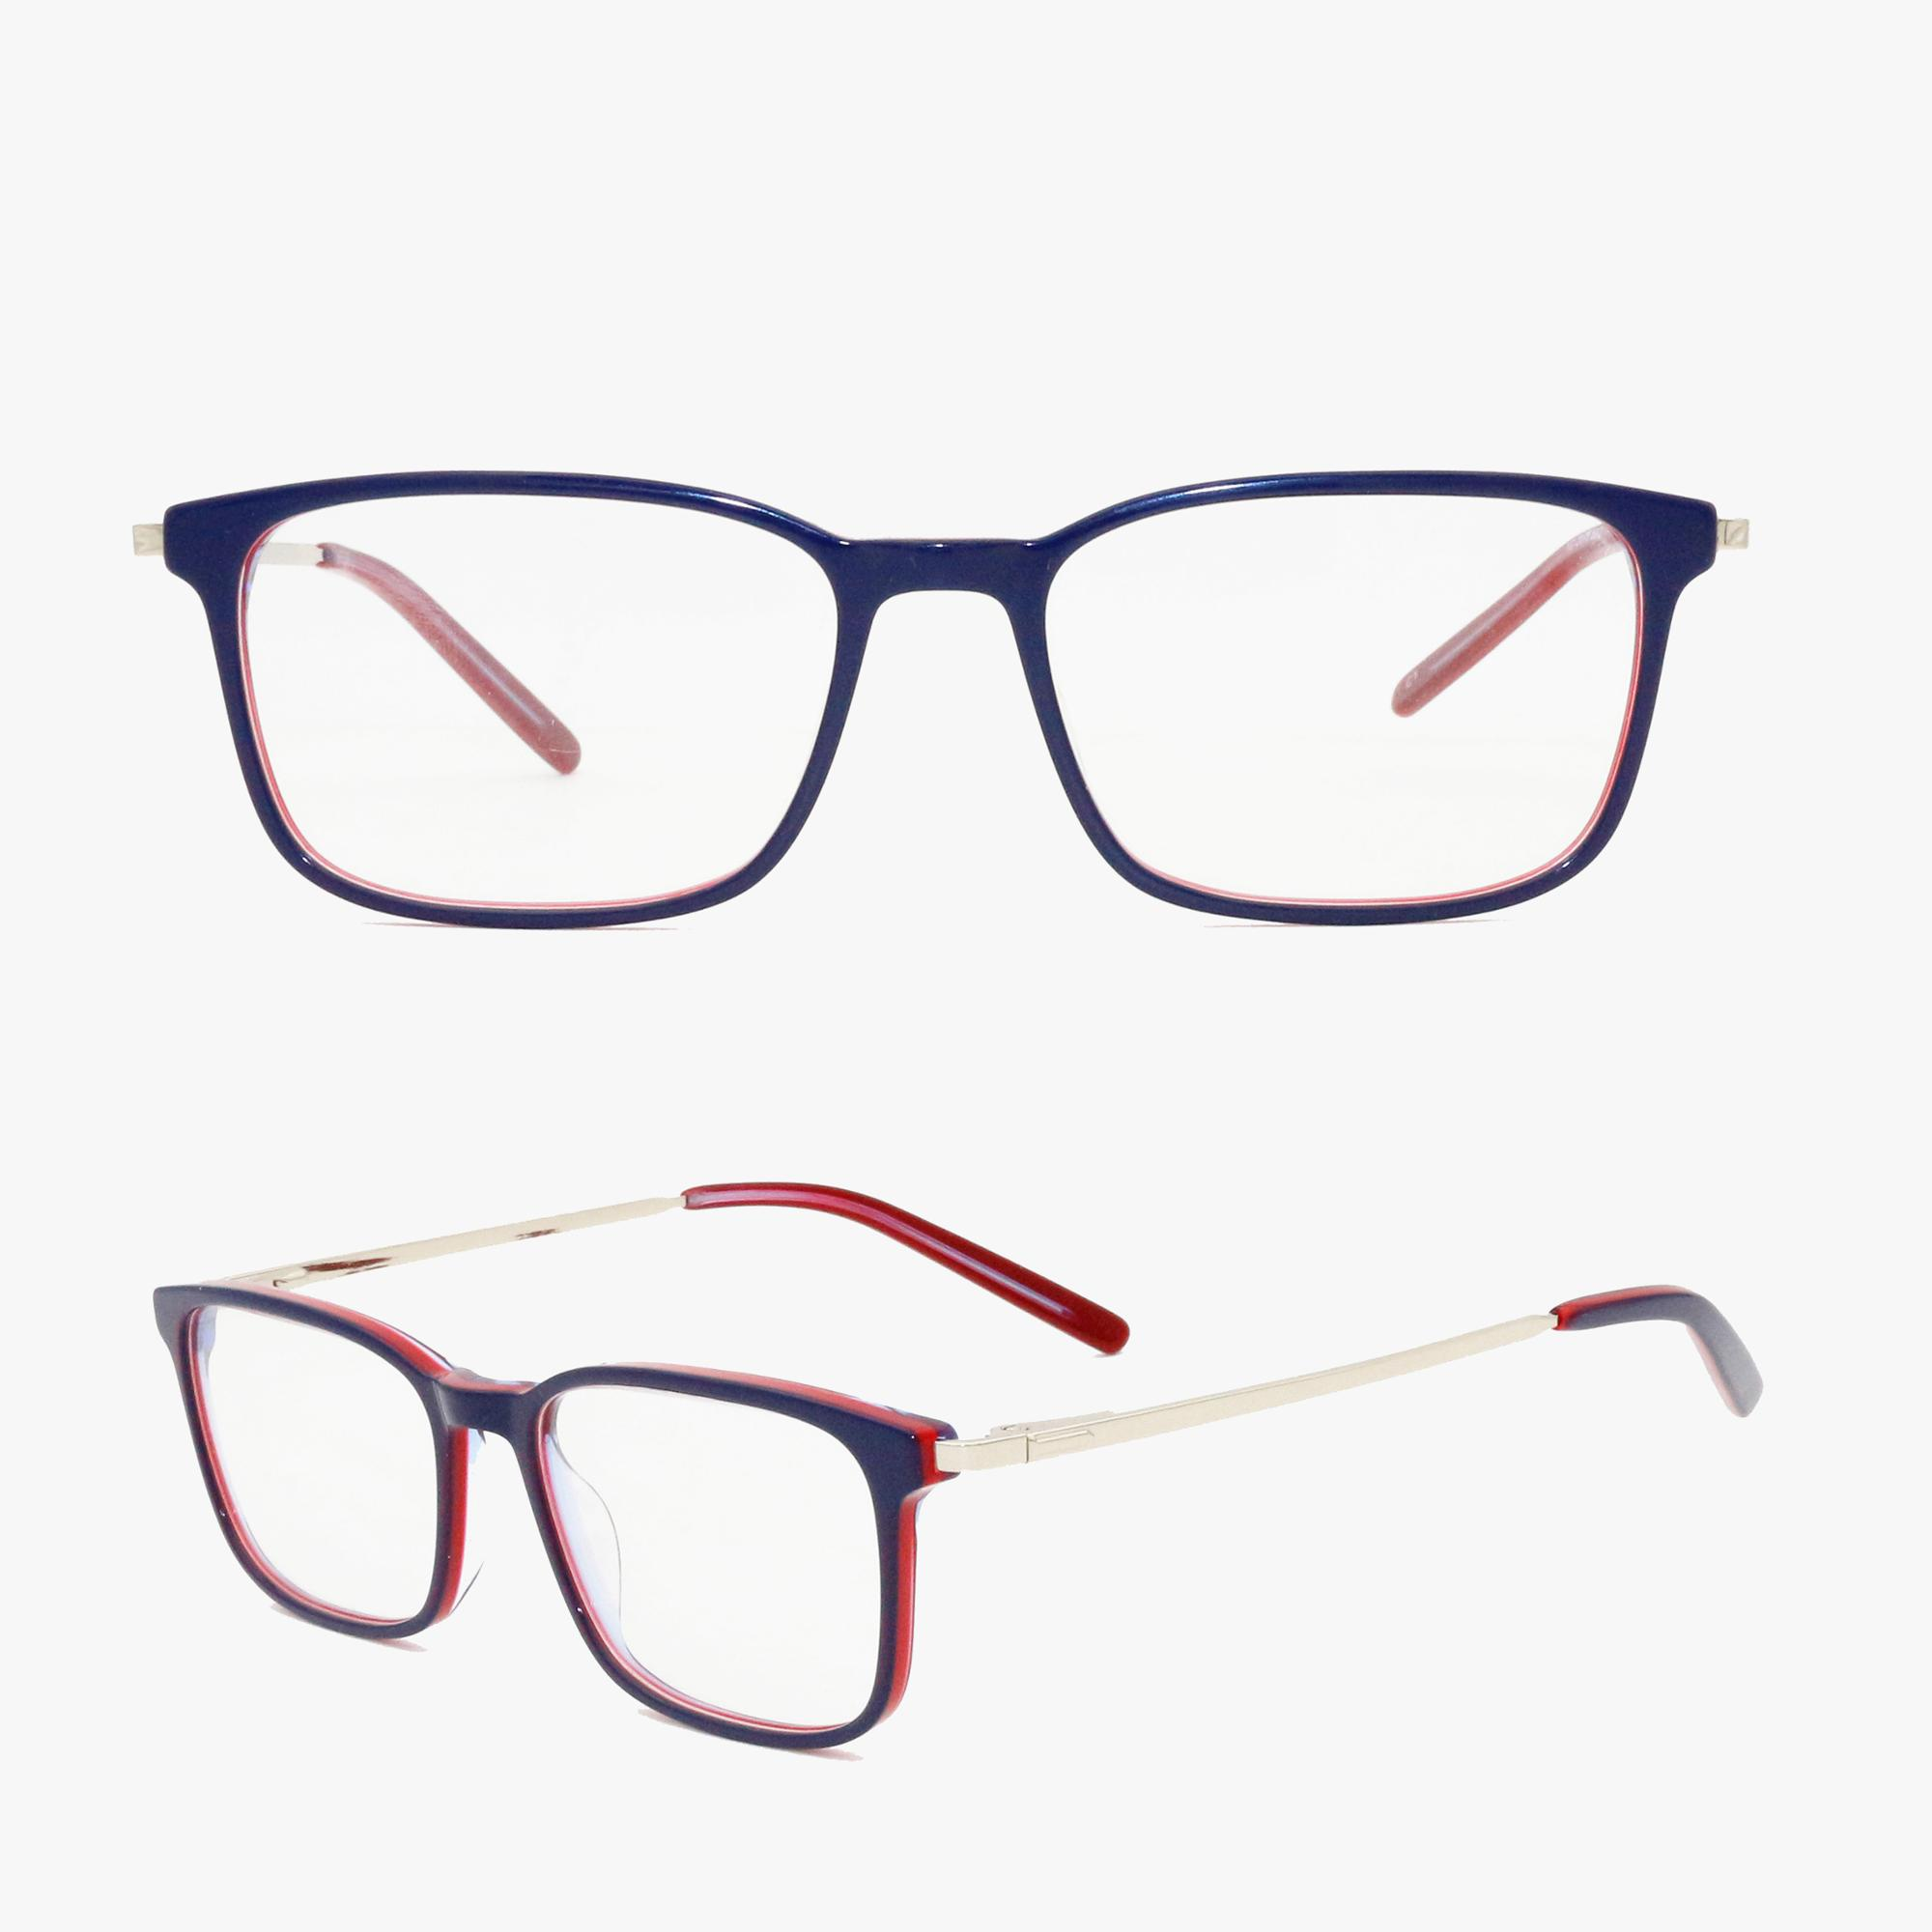 caa32f0f942ac 2018 Hot-sale Mono Design New Model Italy Design Metal Optical Spectacle  Eyeglasses - Buy Mono Design Eyewear,New Model Optical Spectacle,New Italy  ...